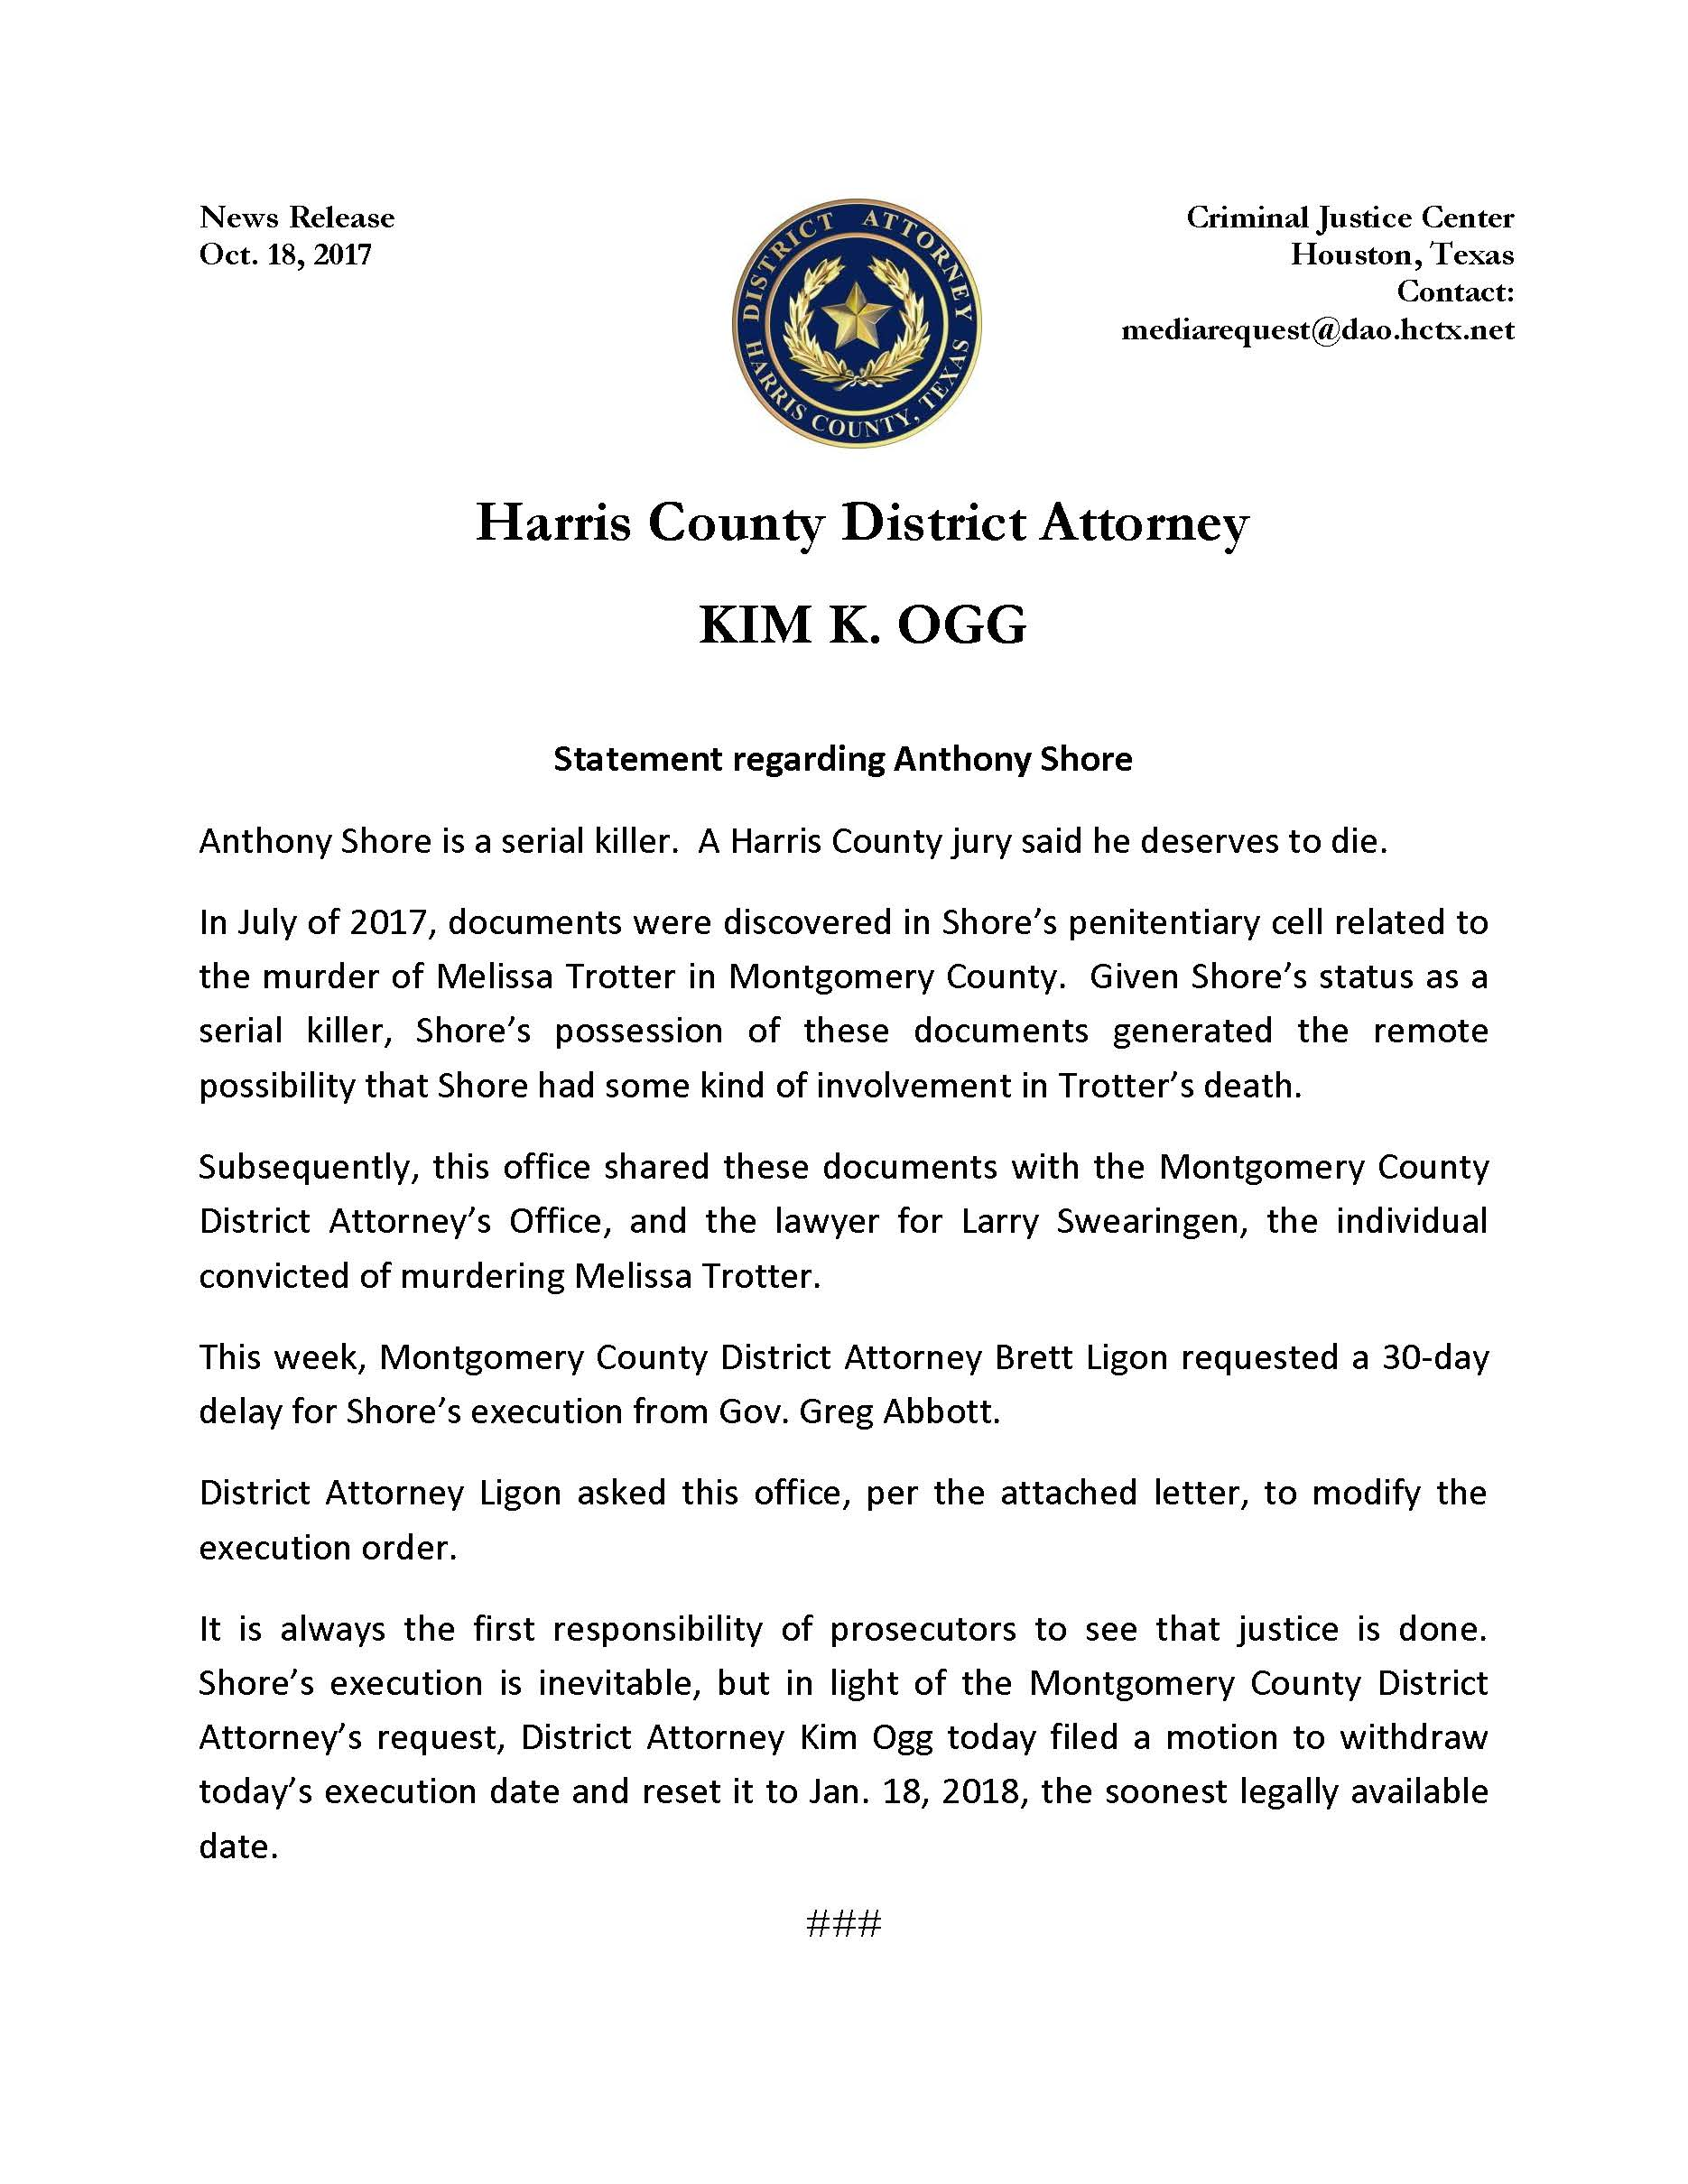 statement from DA Ogg regarding Death Row Inmate Anthony Shore